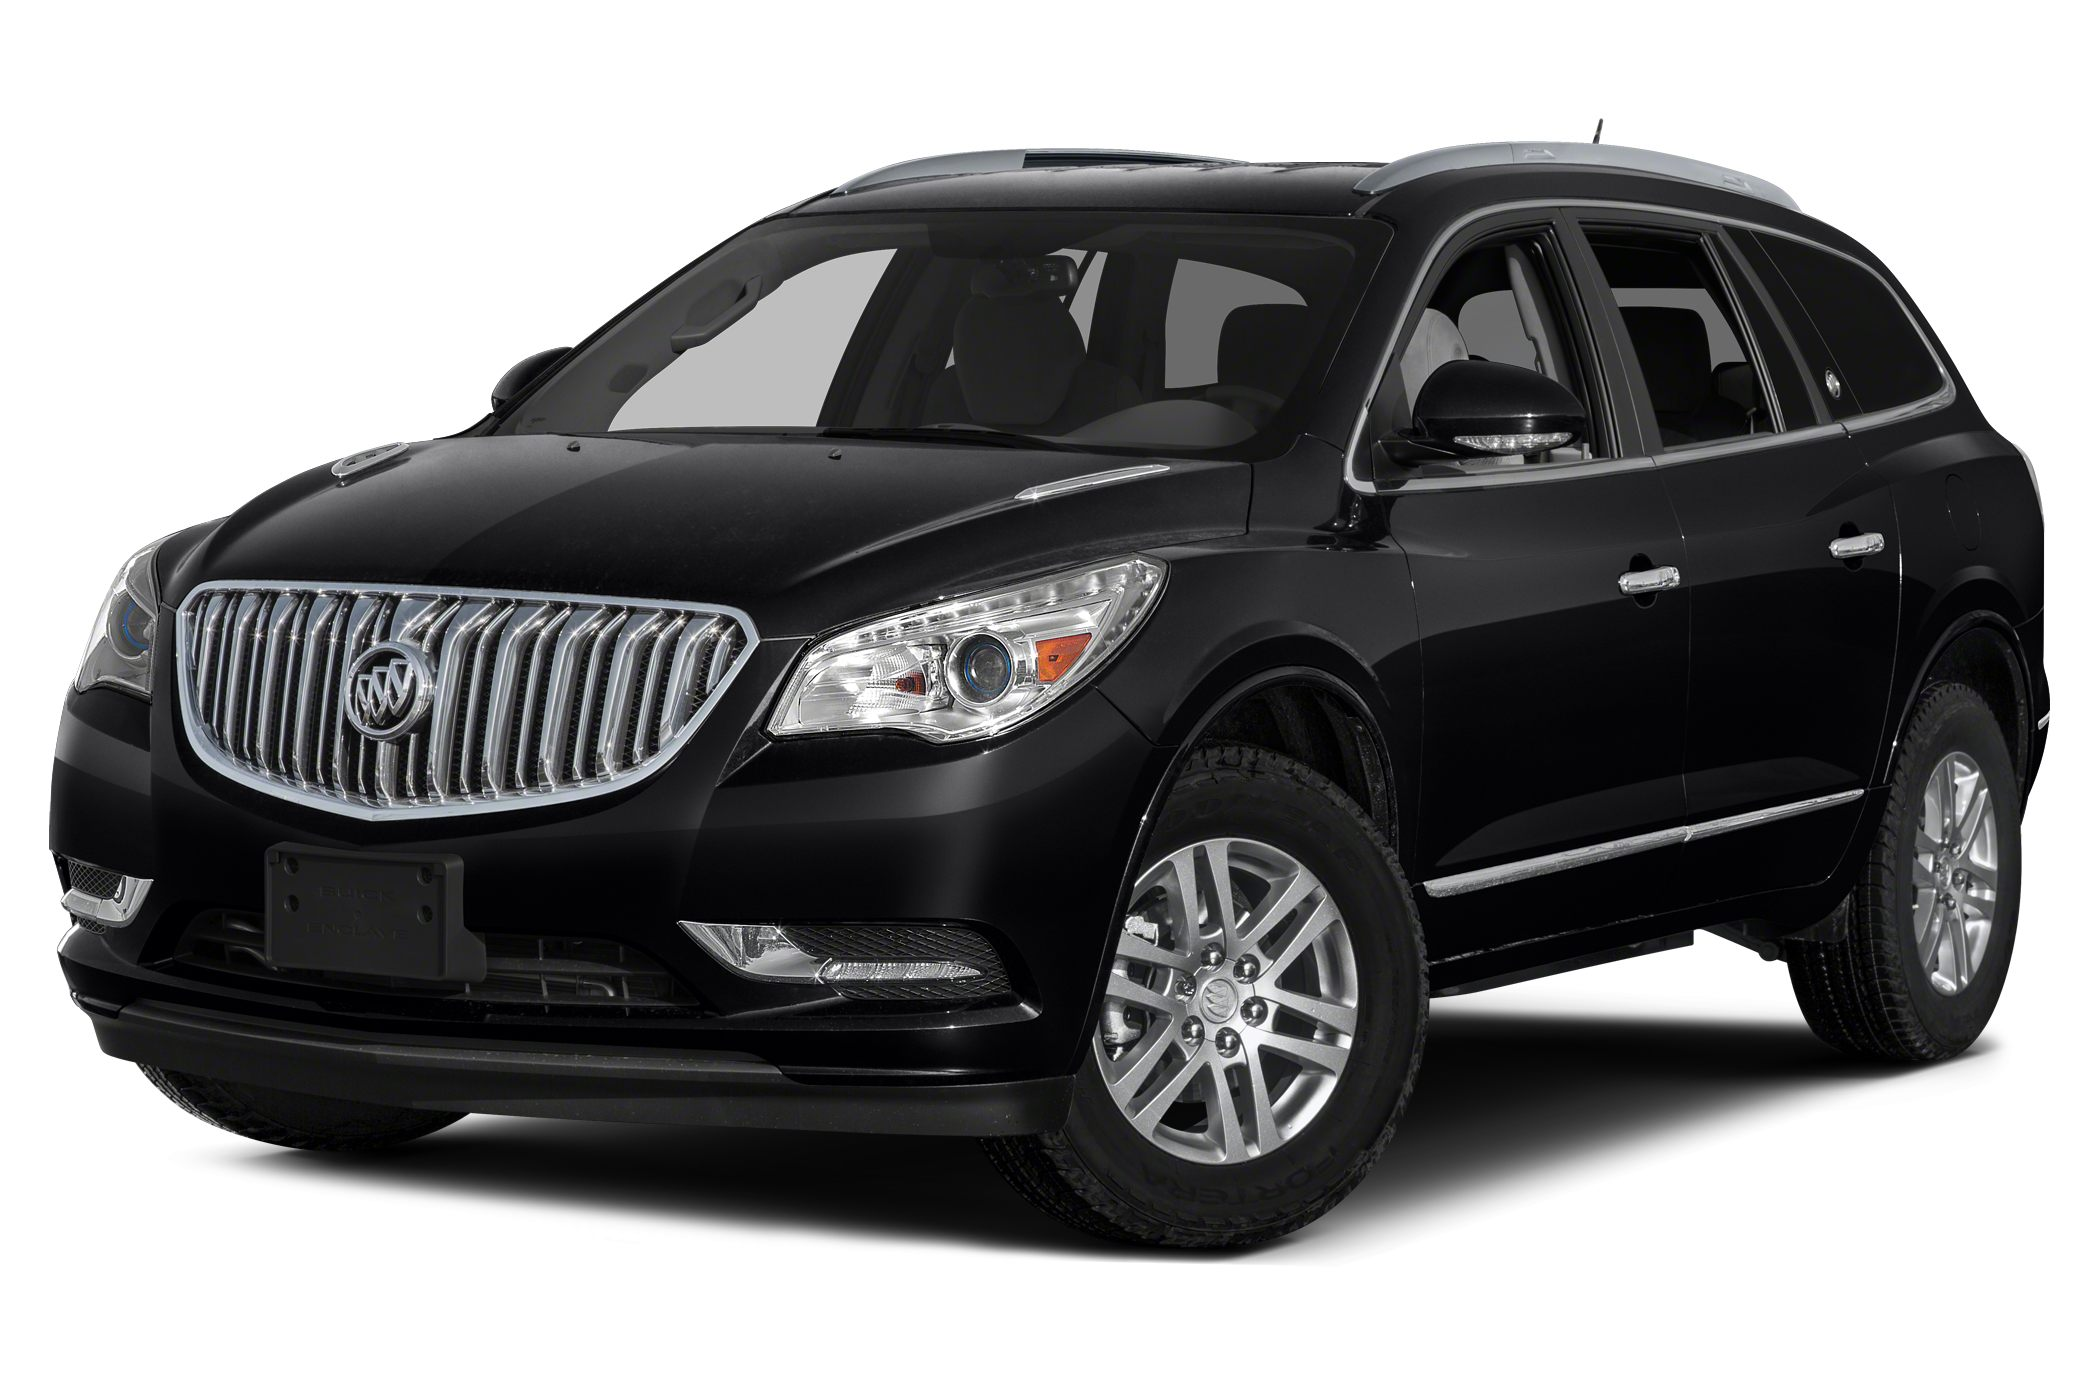 2013 Buick Enclave Premium SUV for sale in Plant City for $36,250 with 26,072 miles